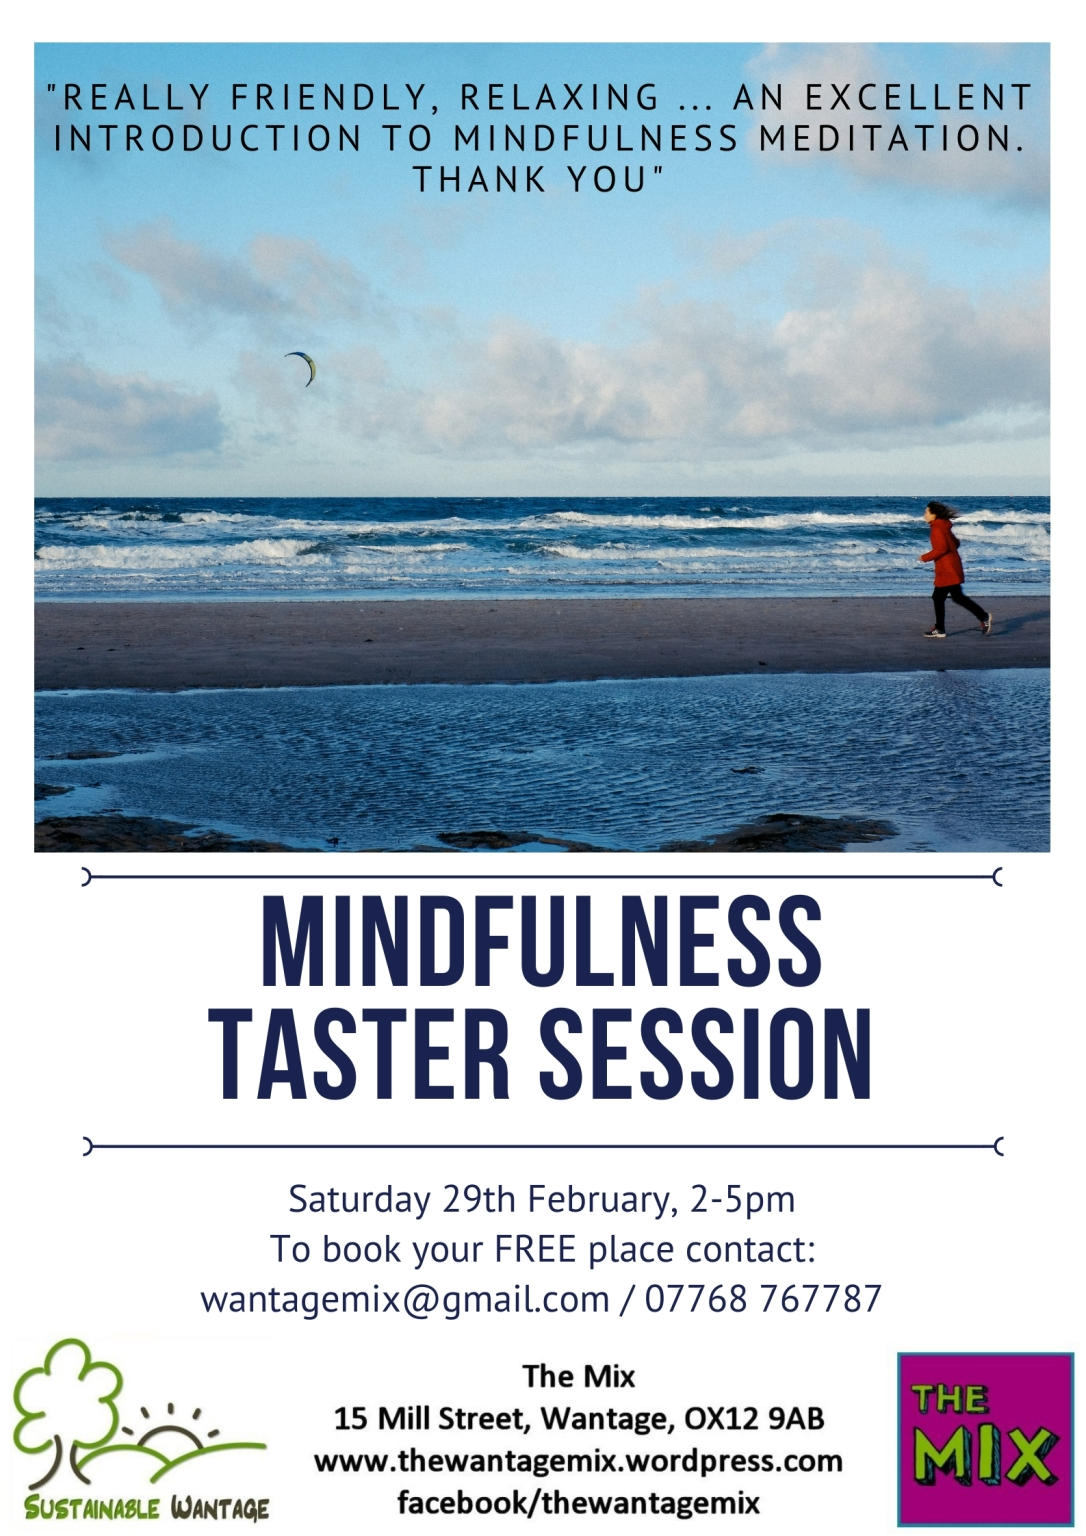 Poster for taster session at The Mix Feb 2020 2